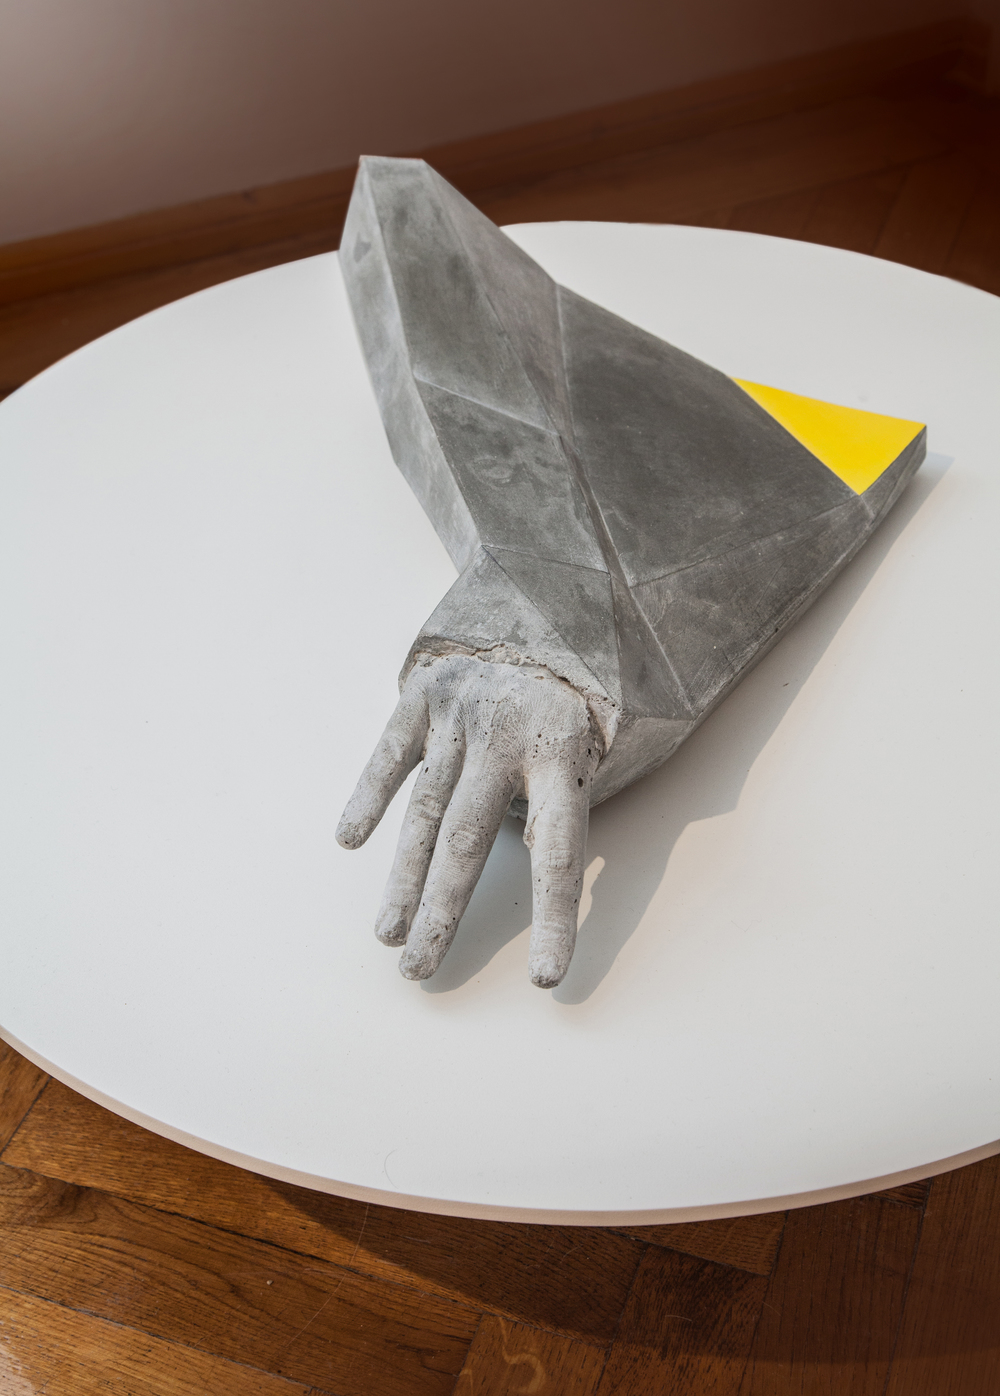 YELLOW TRIANGLE (2013) CONCRETE/METAL/PAINT/WOOD 74 X 74 X 30 CM